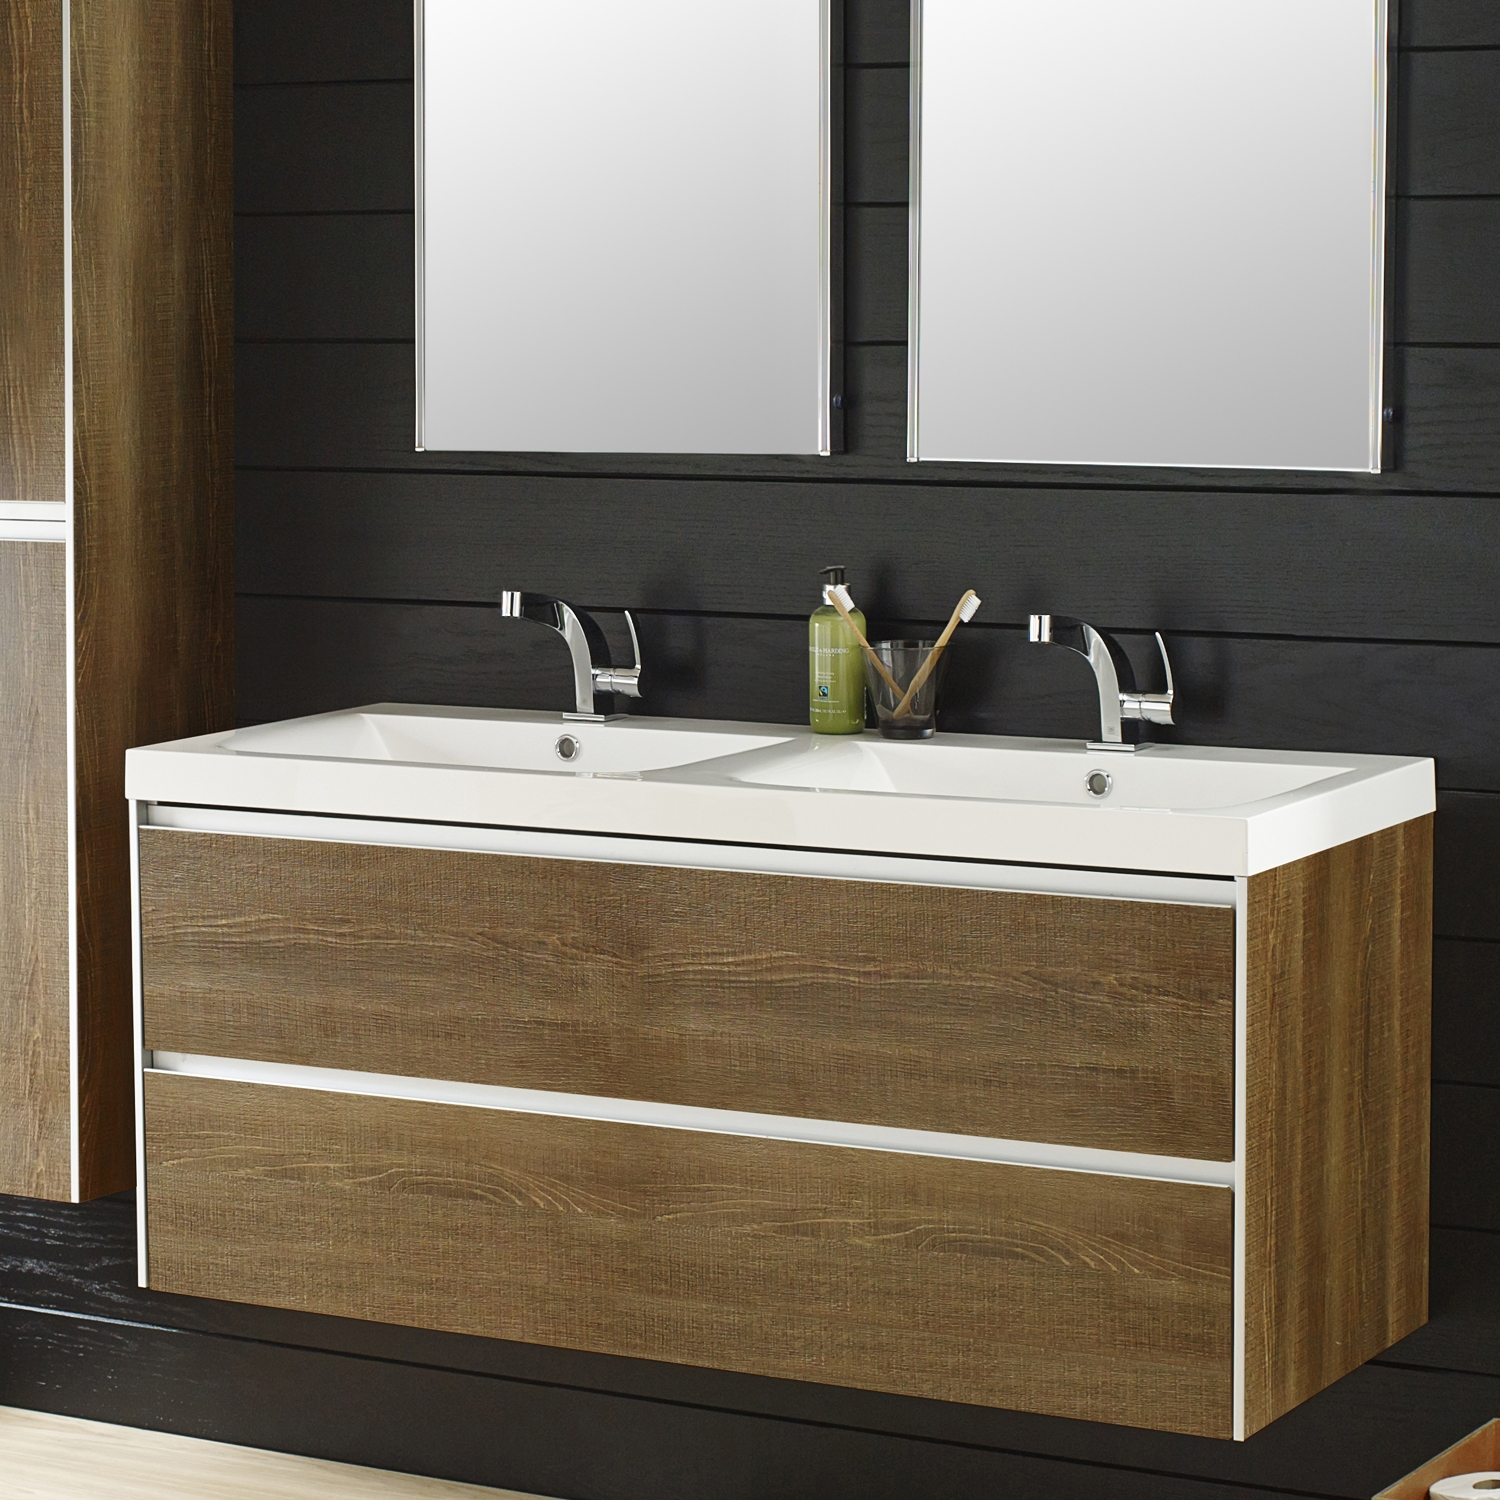 Hudson Reed Erin Wall Mounted Basin and Cabinet, 1200mm Wide, Textured Oak